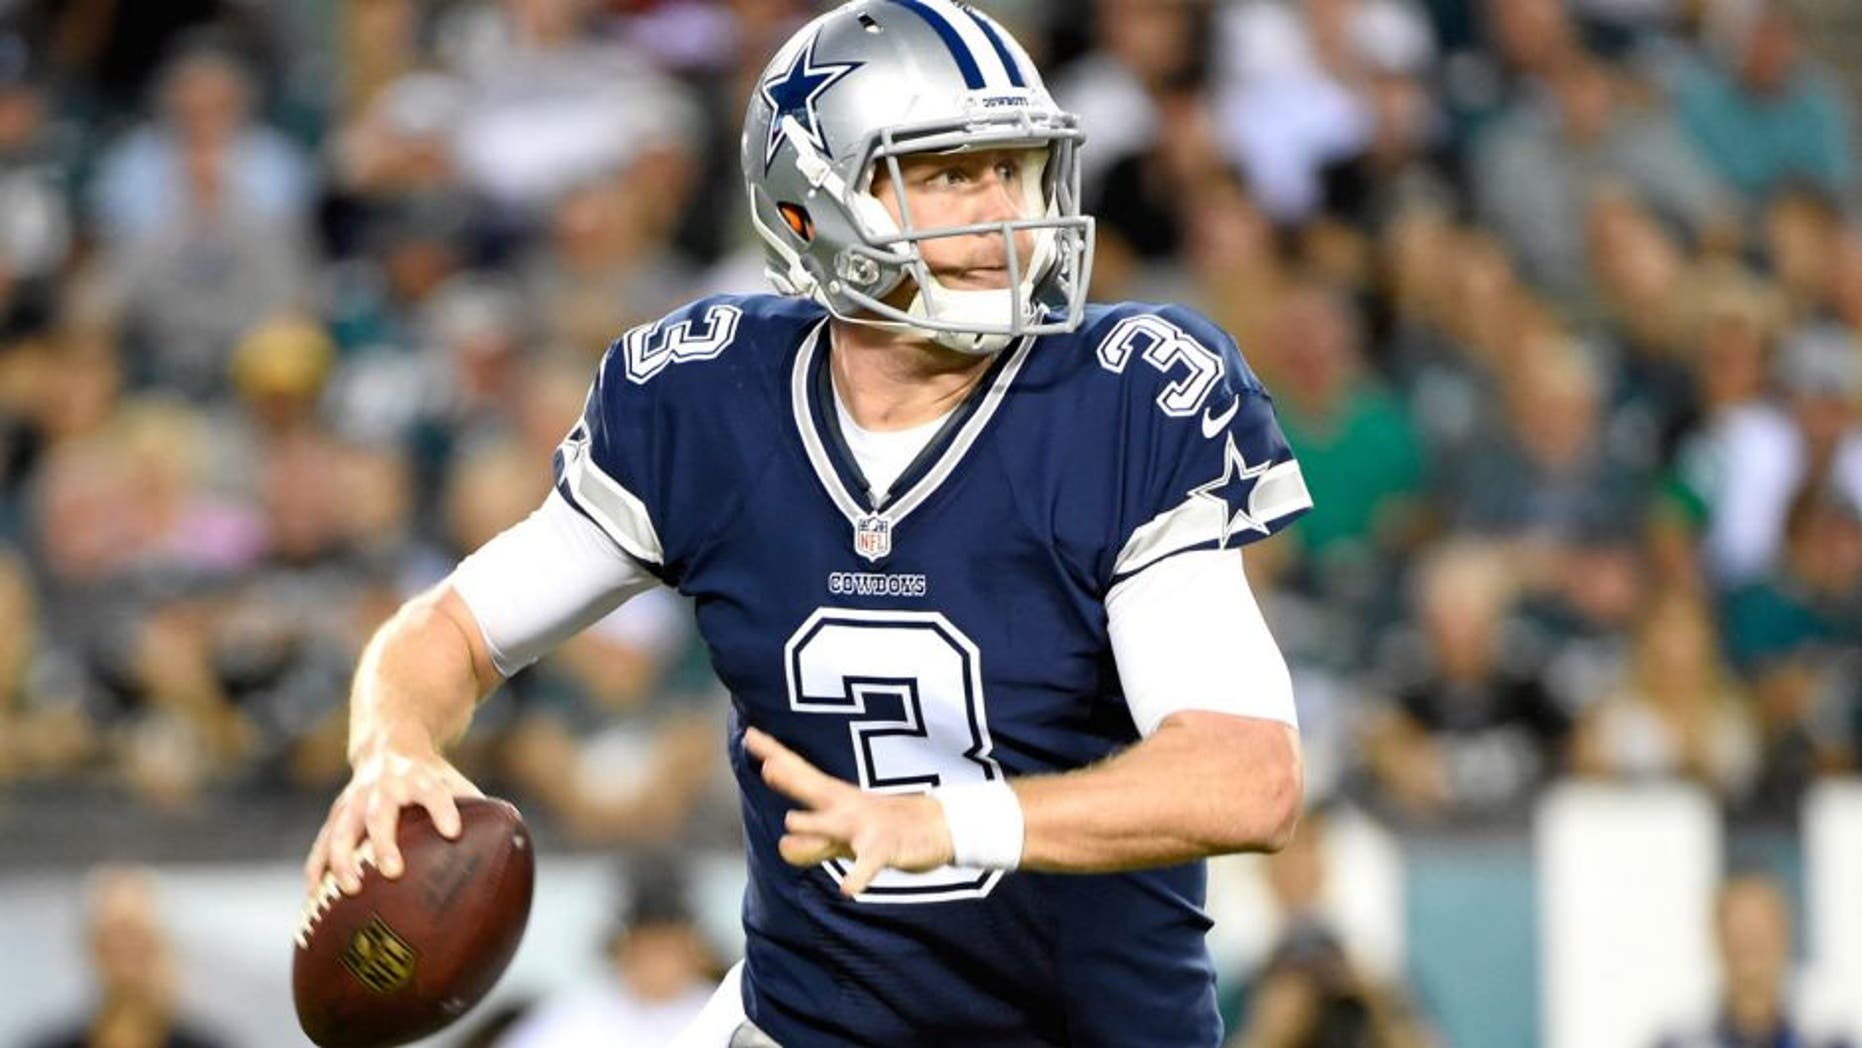 Sep 20, 2015; Philadelphia, PA, USA; Dallas Cowboys quarterback Brandon Weeden (3) throws a pass against the Philadelphia Eagles during the second half at Lincoln Financial Field. The Cowboys defeated the Eagles, 20-10. Mandatory Credit: Eric Hartline-USA TODAY Sports